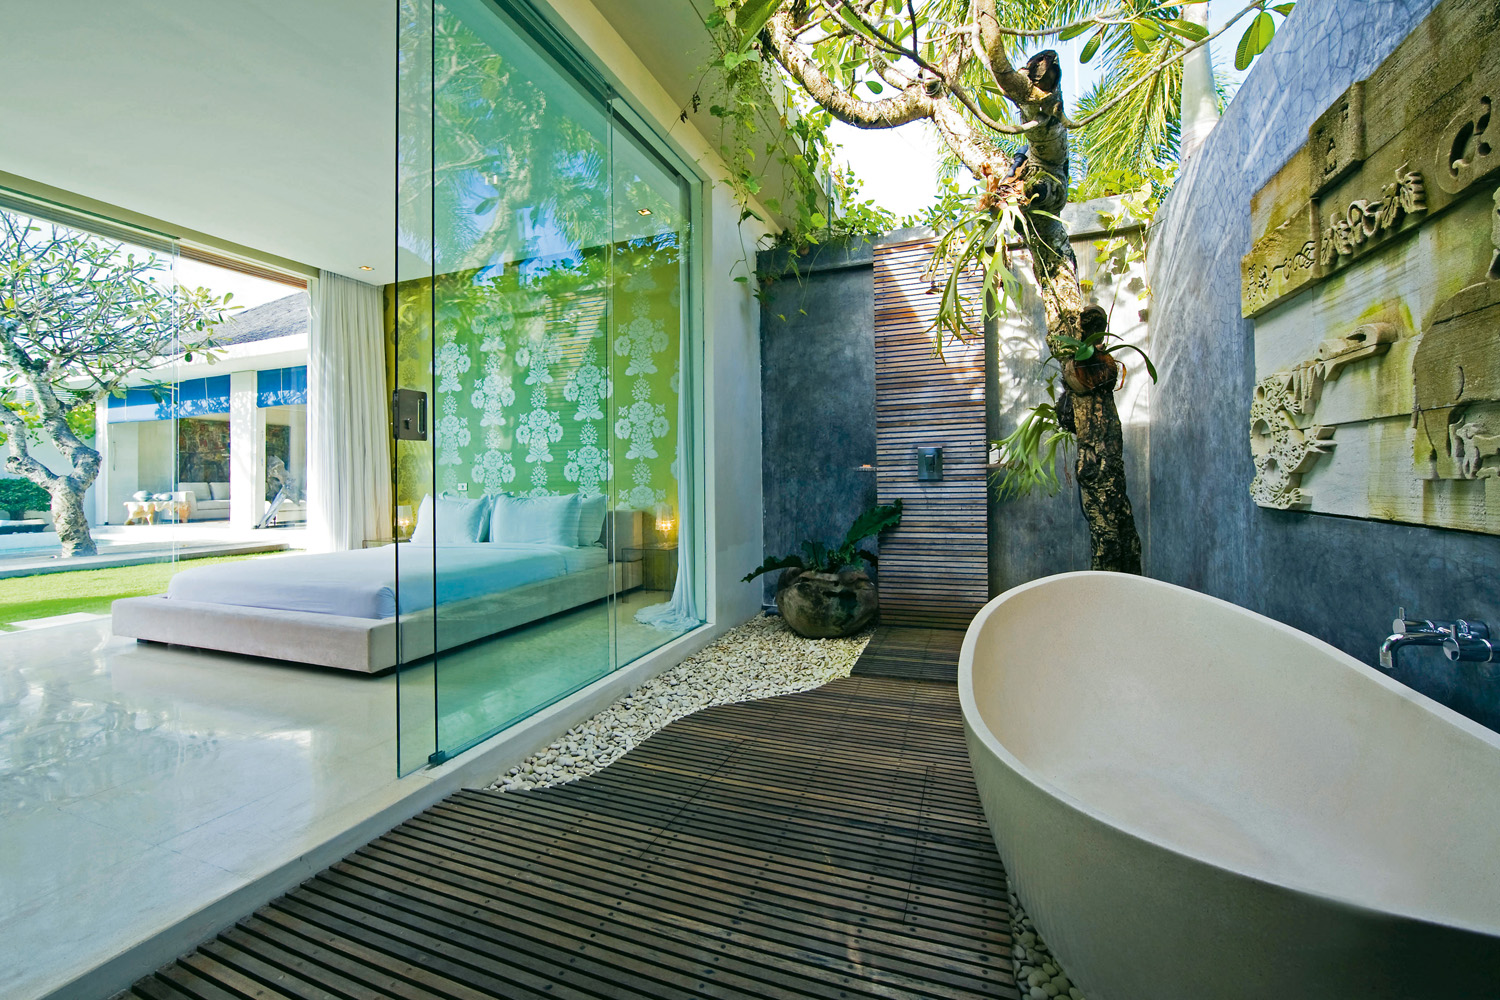 The ultimate outdoor bathroom guide completehome for Bali home inspirational design ideas